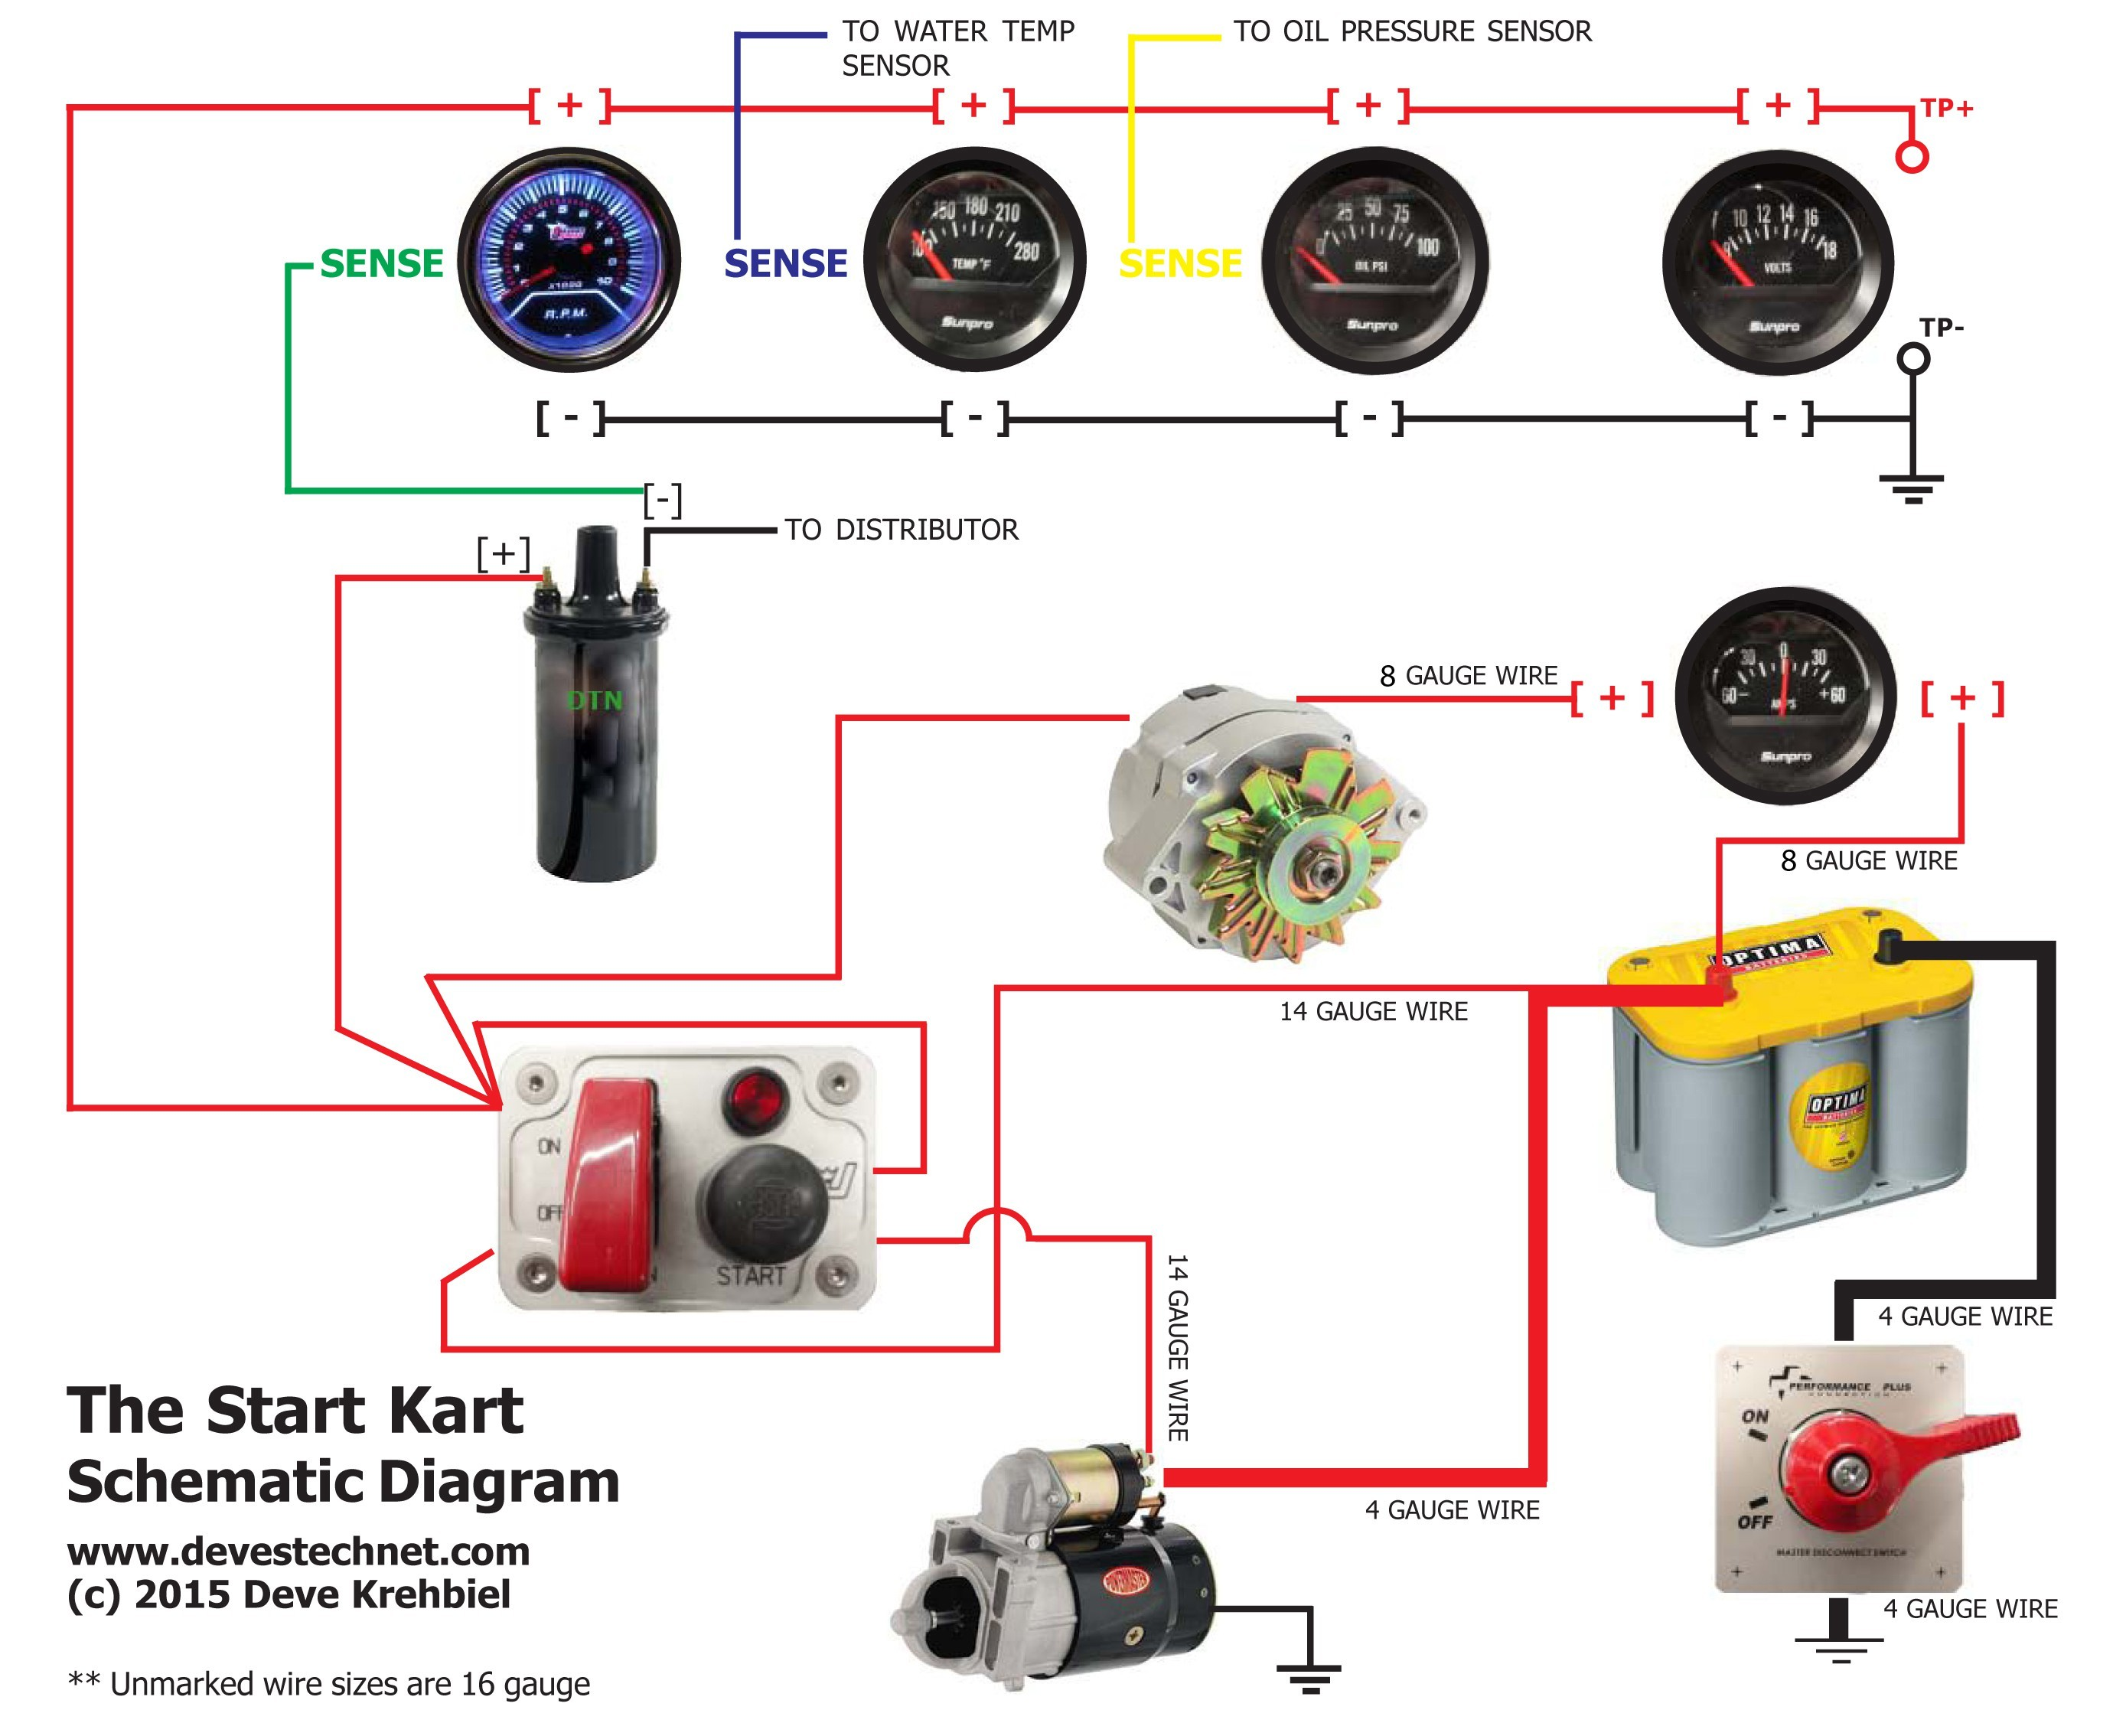 Start Kart Plans Use A Good Ohm Meter For Checking Your Routes Prior To Adding Power Ampere Meter Connection wiring diagram ponents from autometer